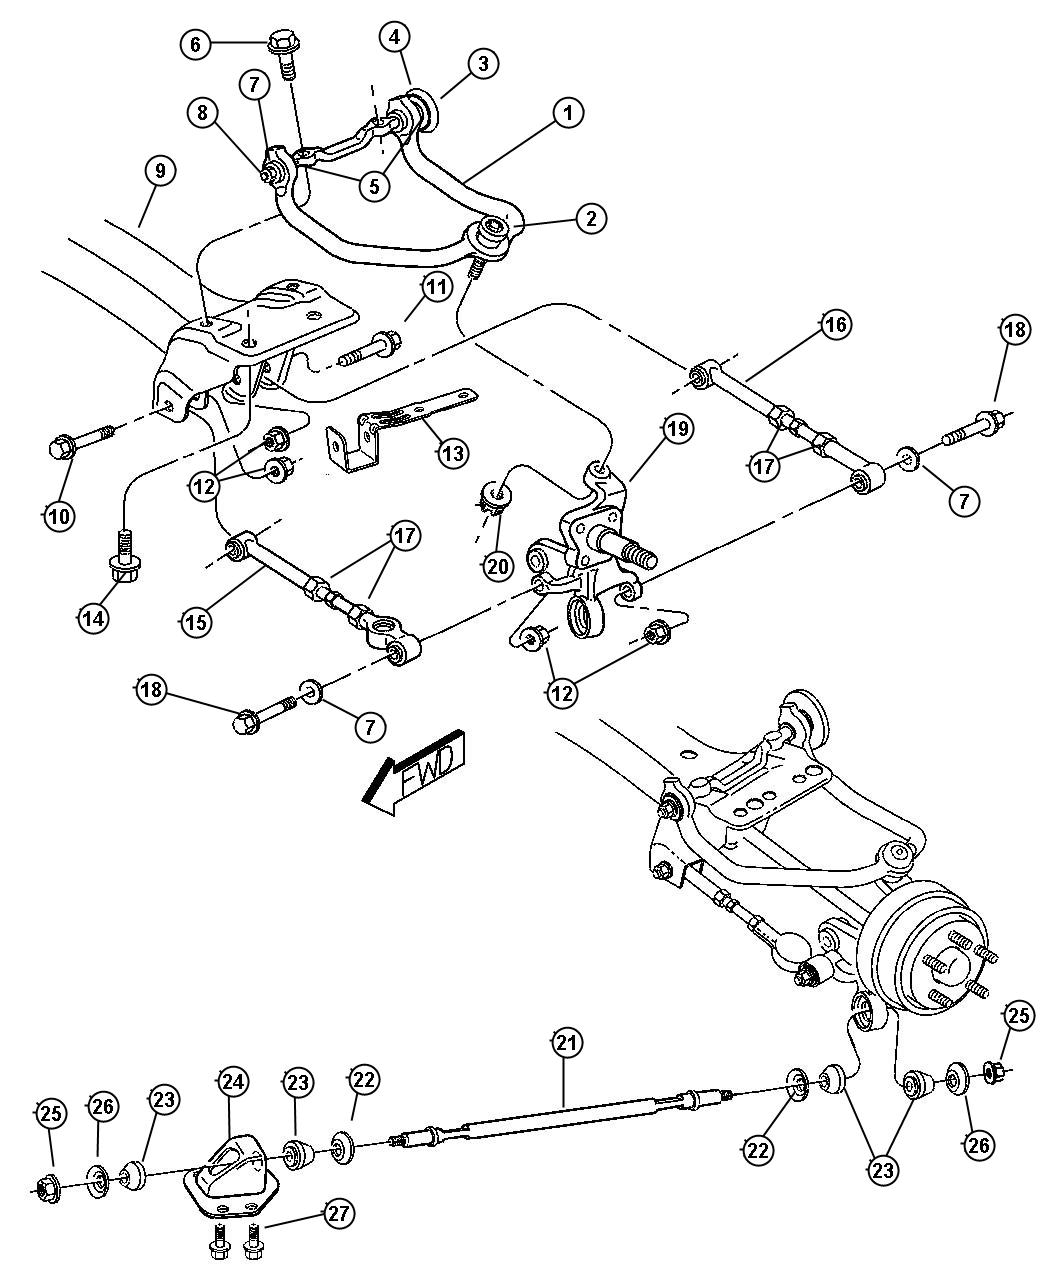 Part Diagrams 97 Gmc K3500 likewise Allison Automatic Transmission Wiring Diagram moreover 1982 Gmc Truck Engine  partment besides Wiring Diagrams Ihc Tractors together with 1986 Ford Ltd Crown Victoria Engine Diagram. on chevrolet truck wiring diagrams